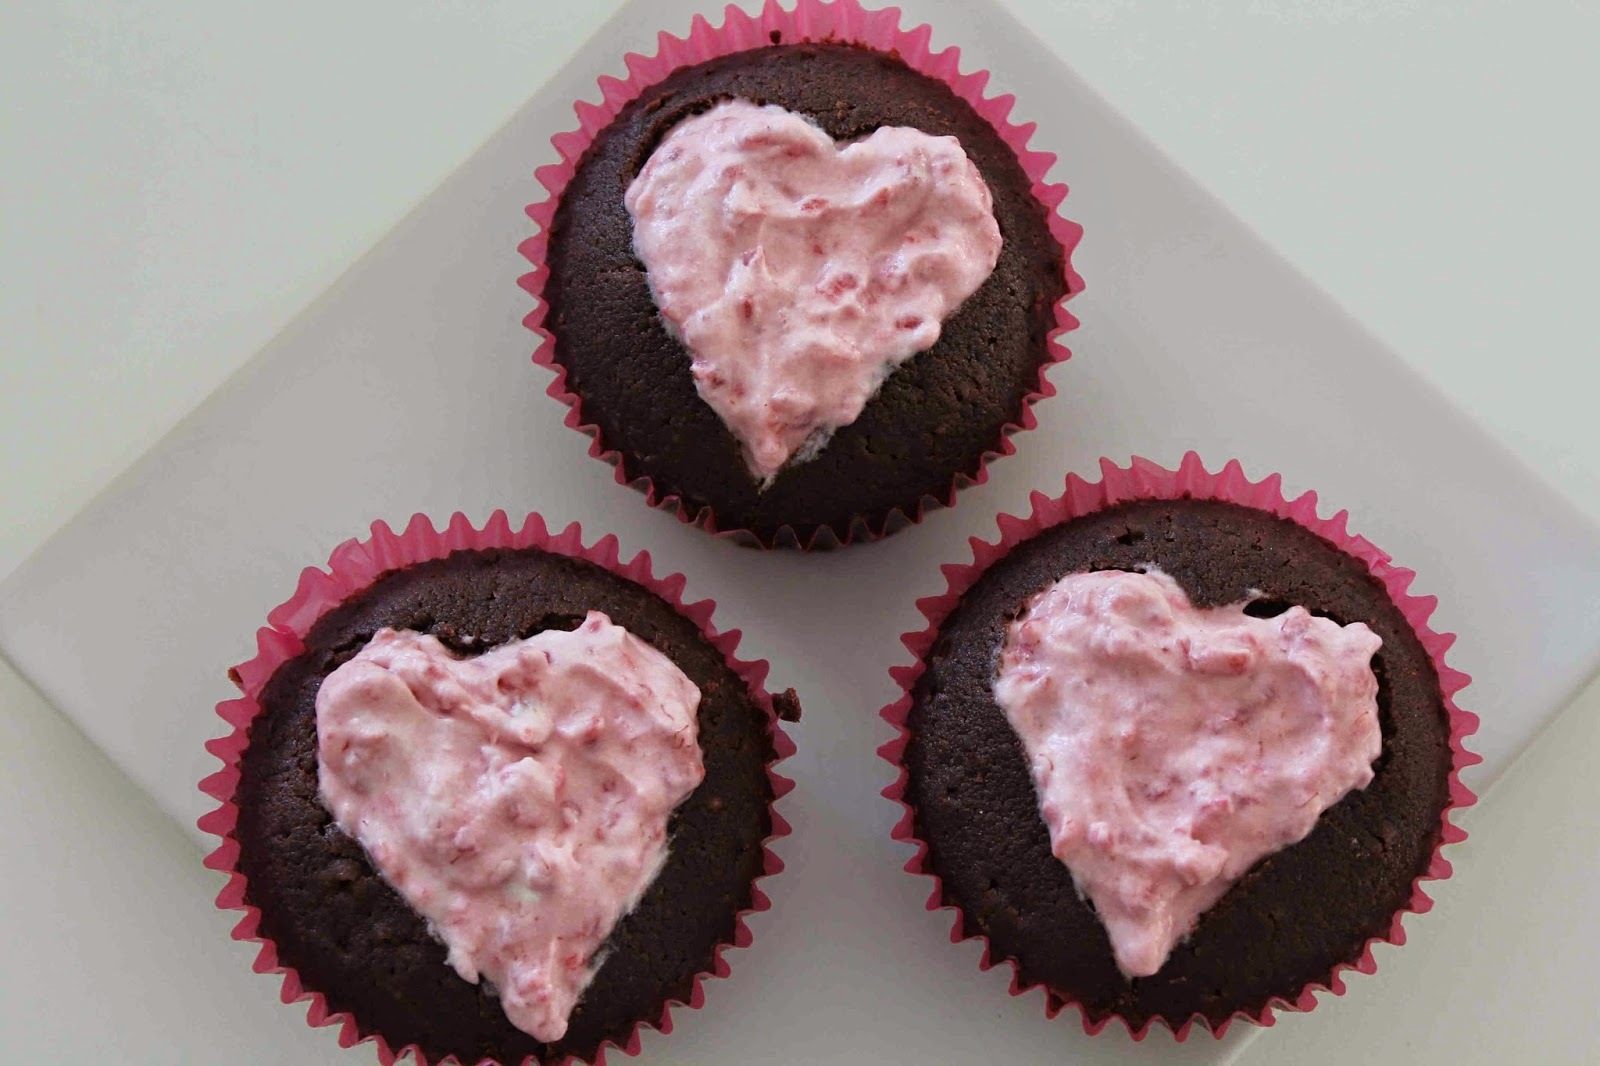 Chokladmuffins med hallonmousse